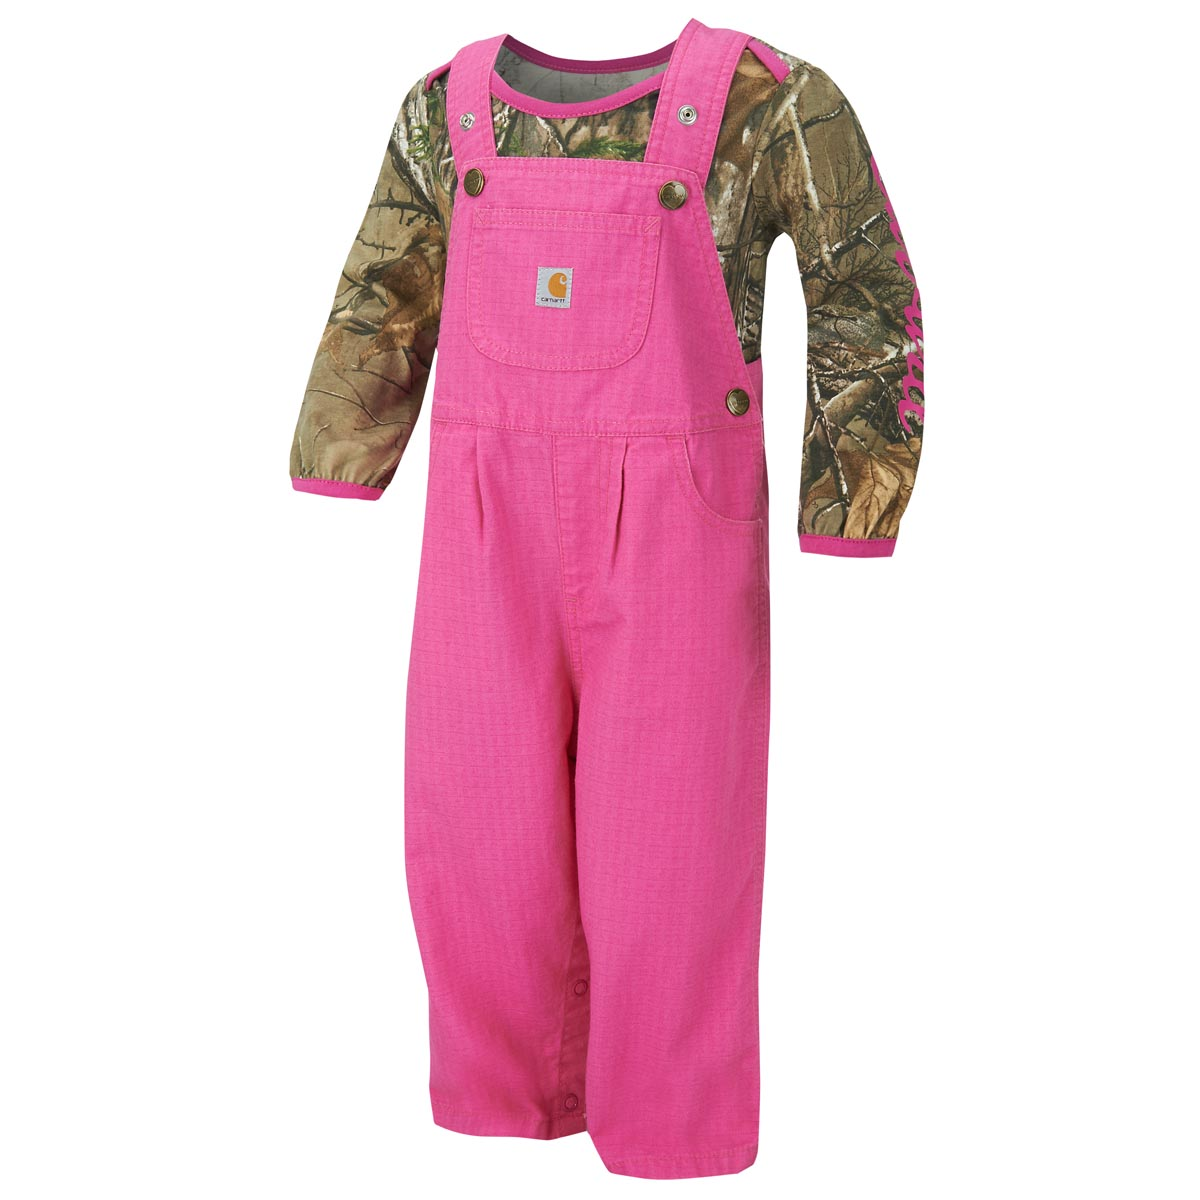 Carhartt Infant Girls' Camo Overall Set